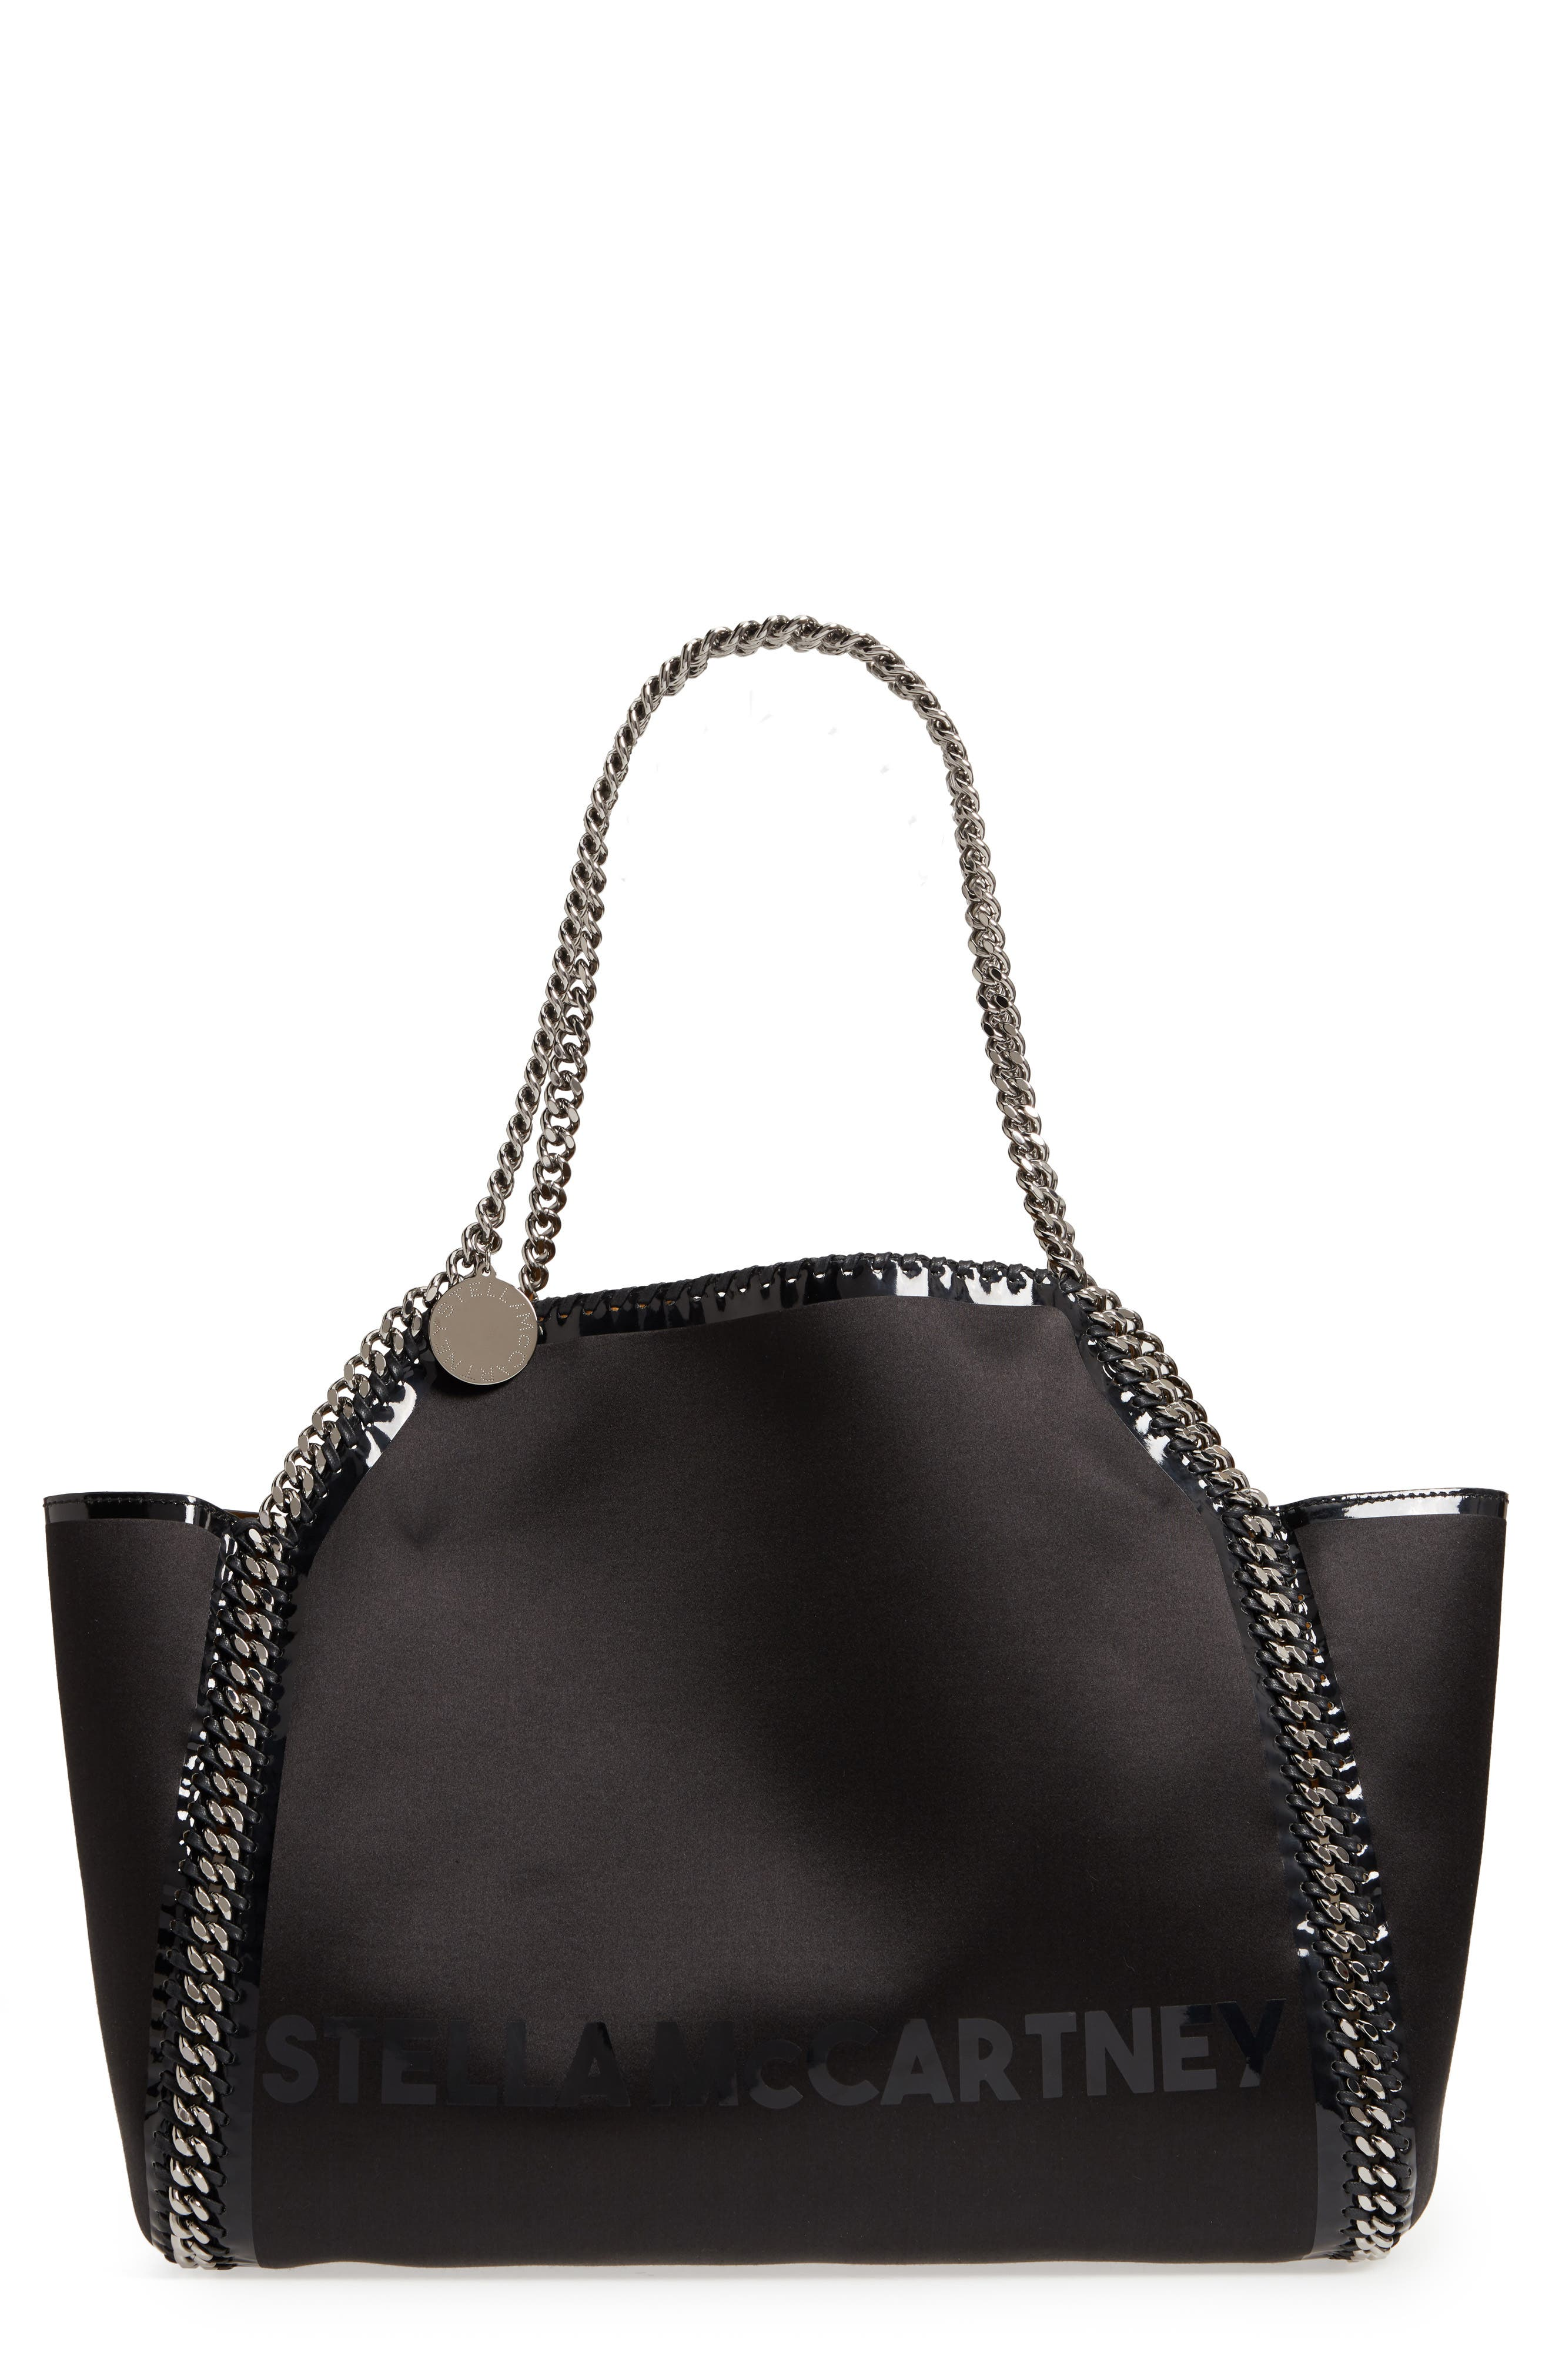 Stella McCartney Small Falabella Satin Tote